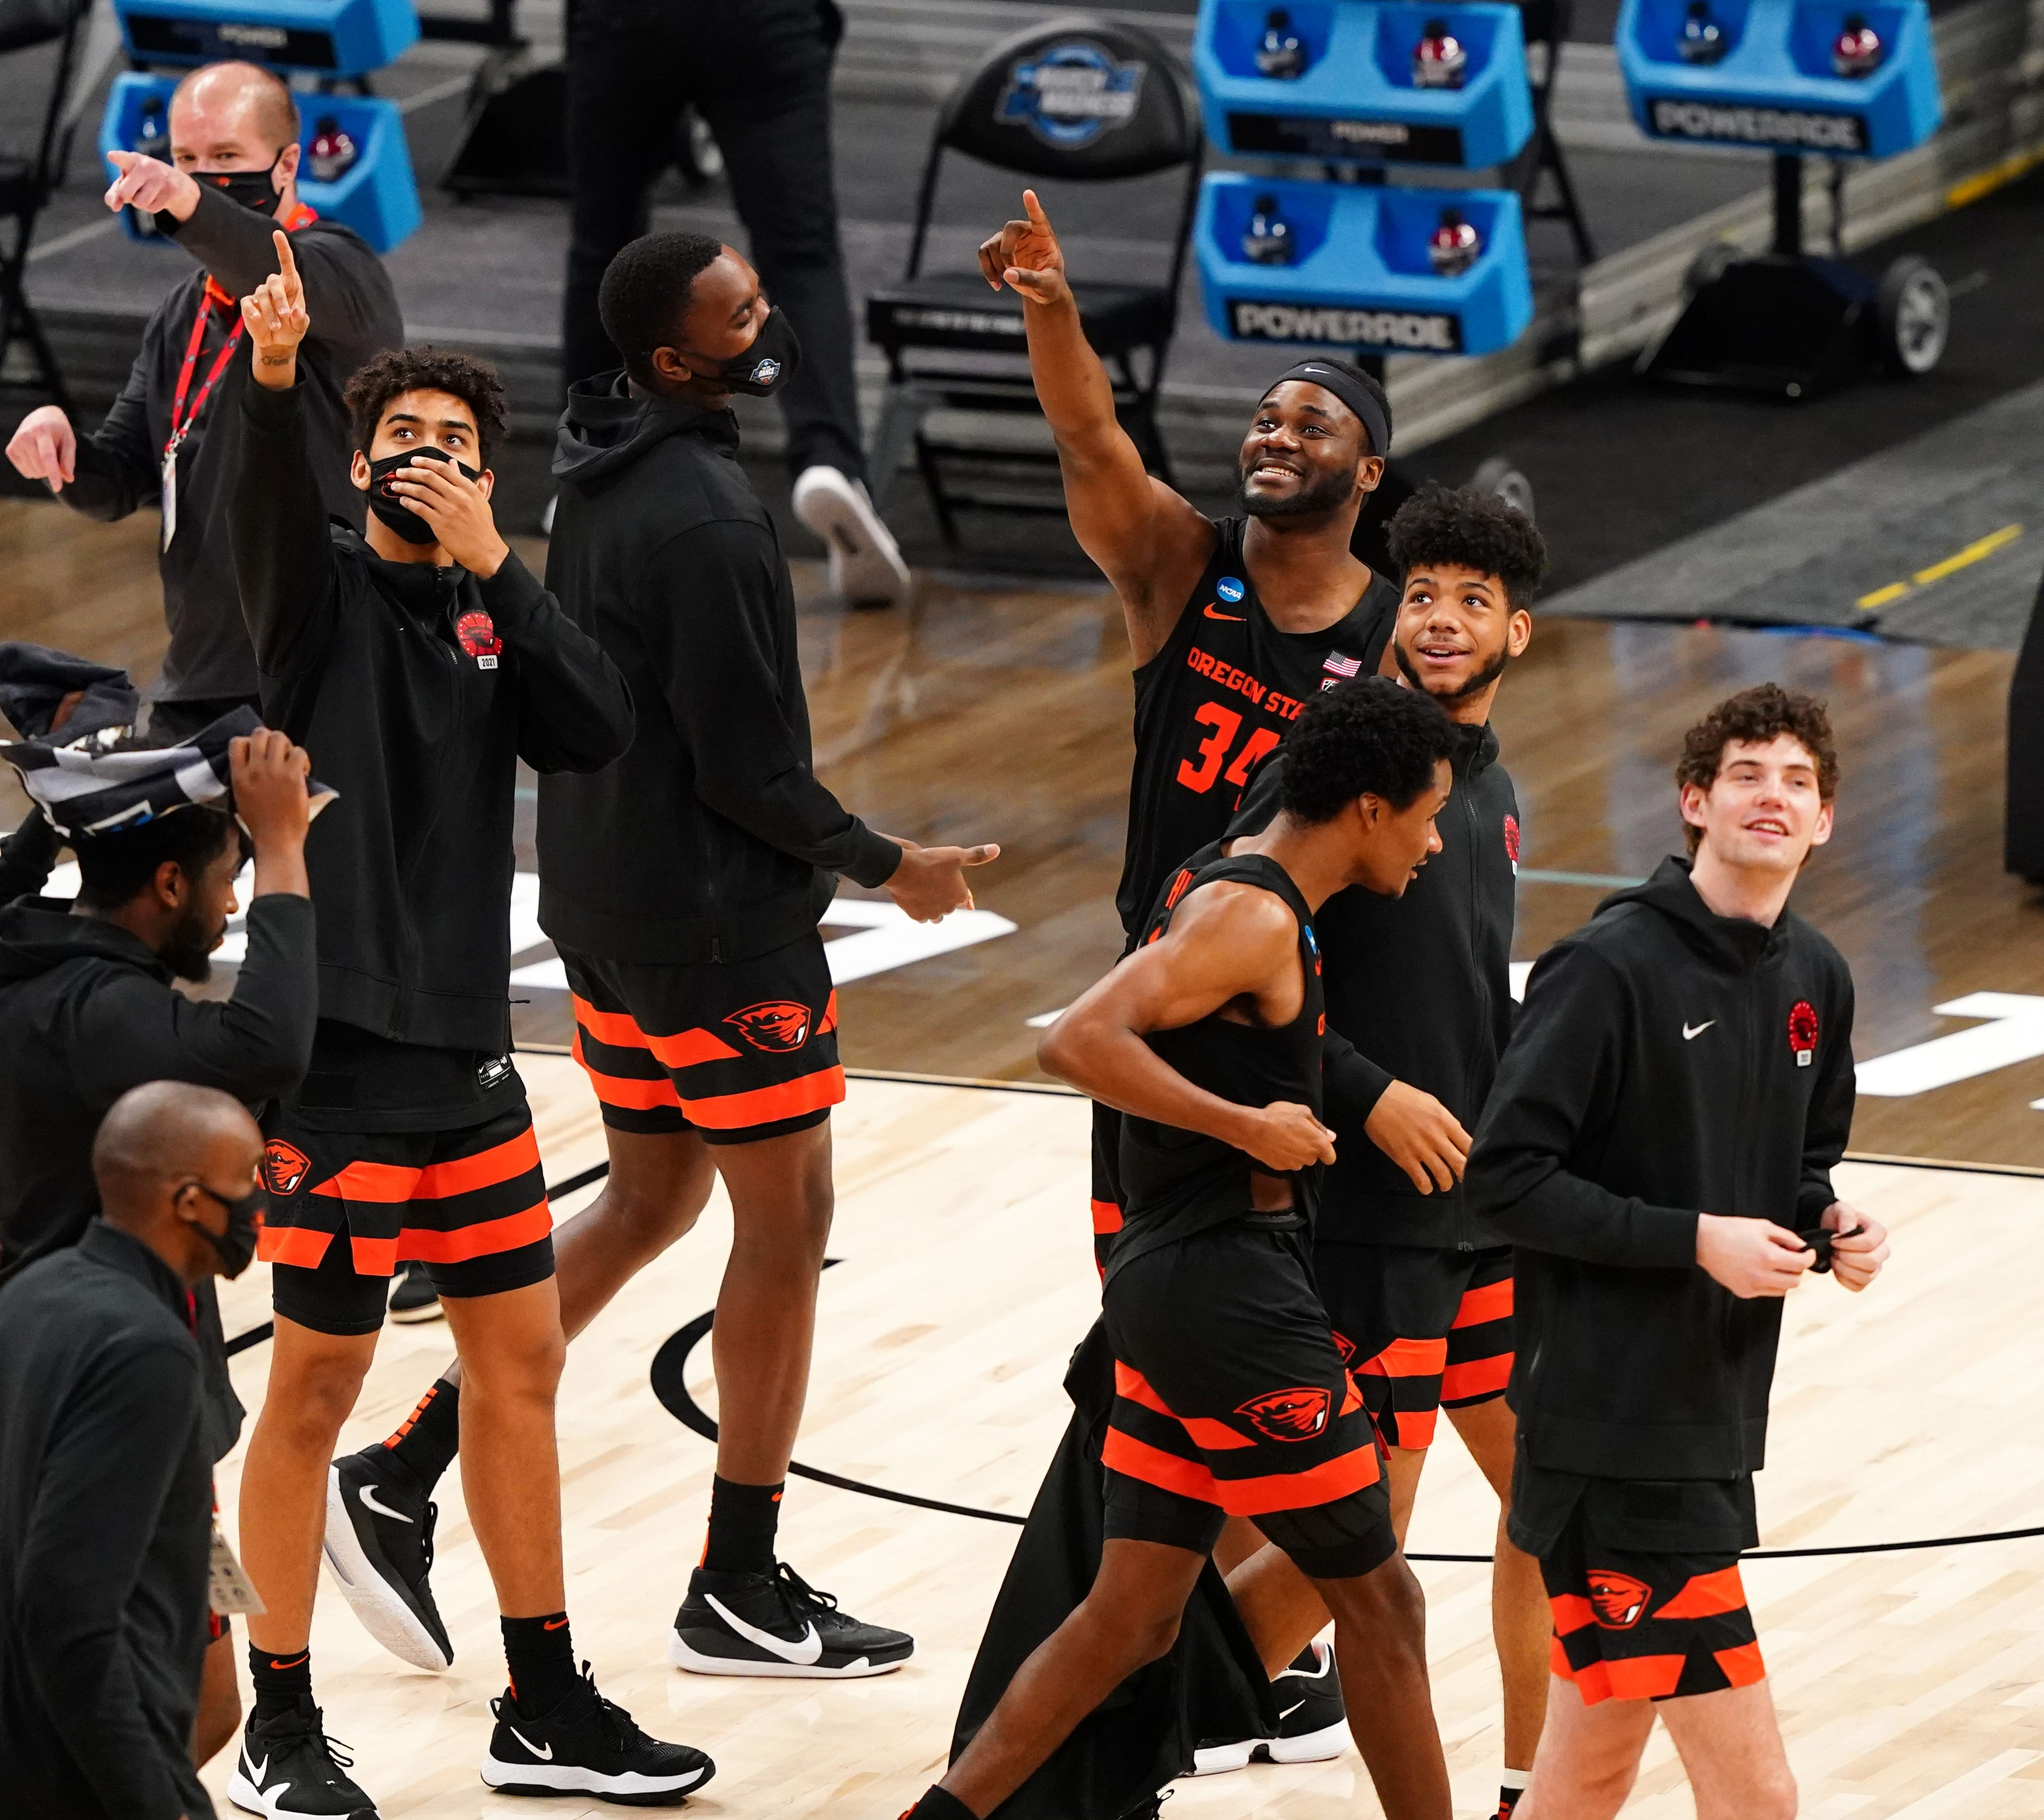 Oregon State Beavers players point to their fans after the win during the Sweet Sixteen round of the 2021 NCAA Tournament on Saturday, March 27, 2021, at Bankers Life Fieldhouse in Indianapolis, Ind.